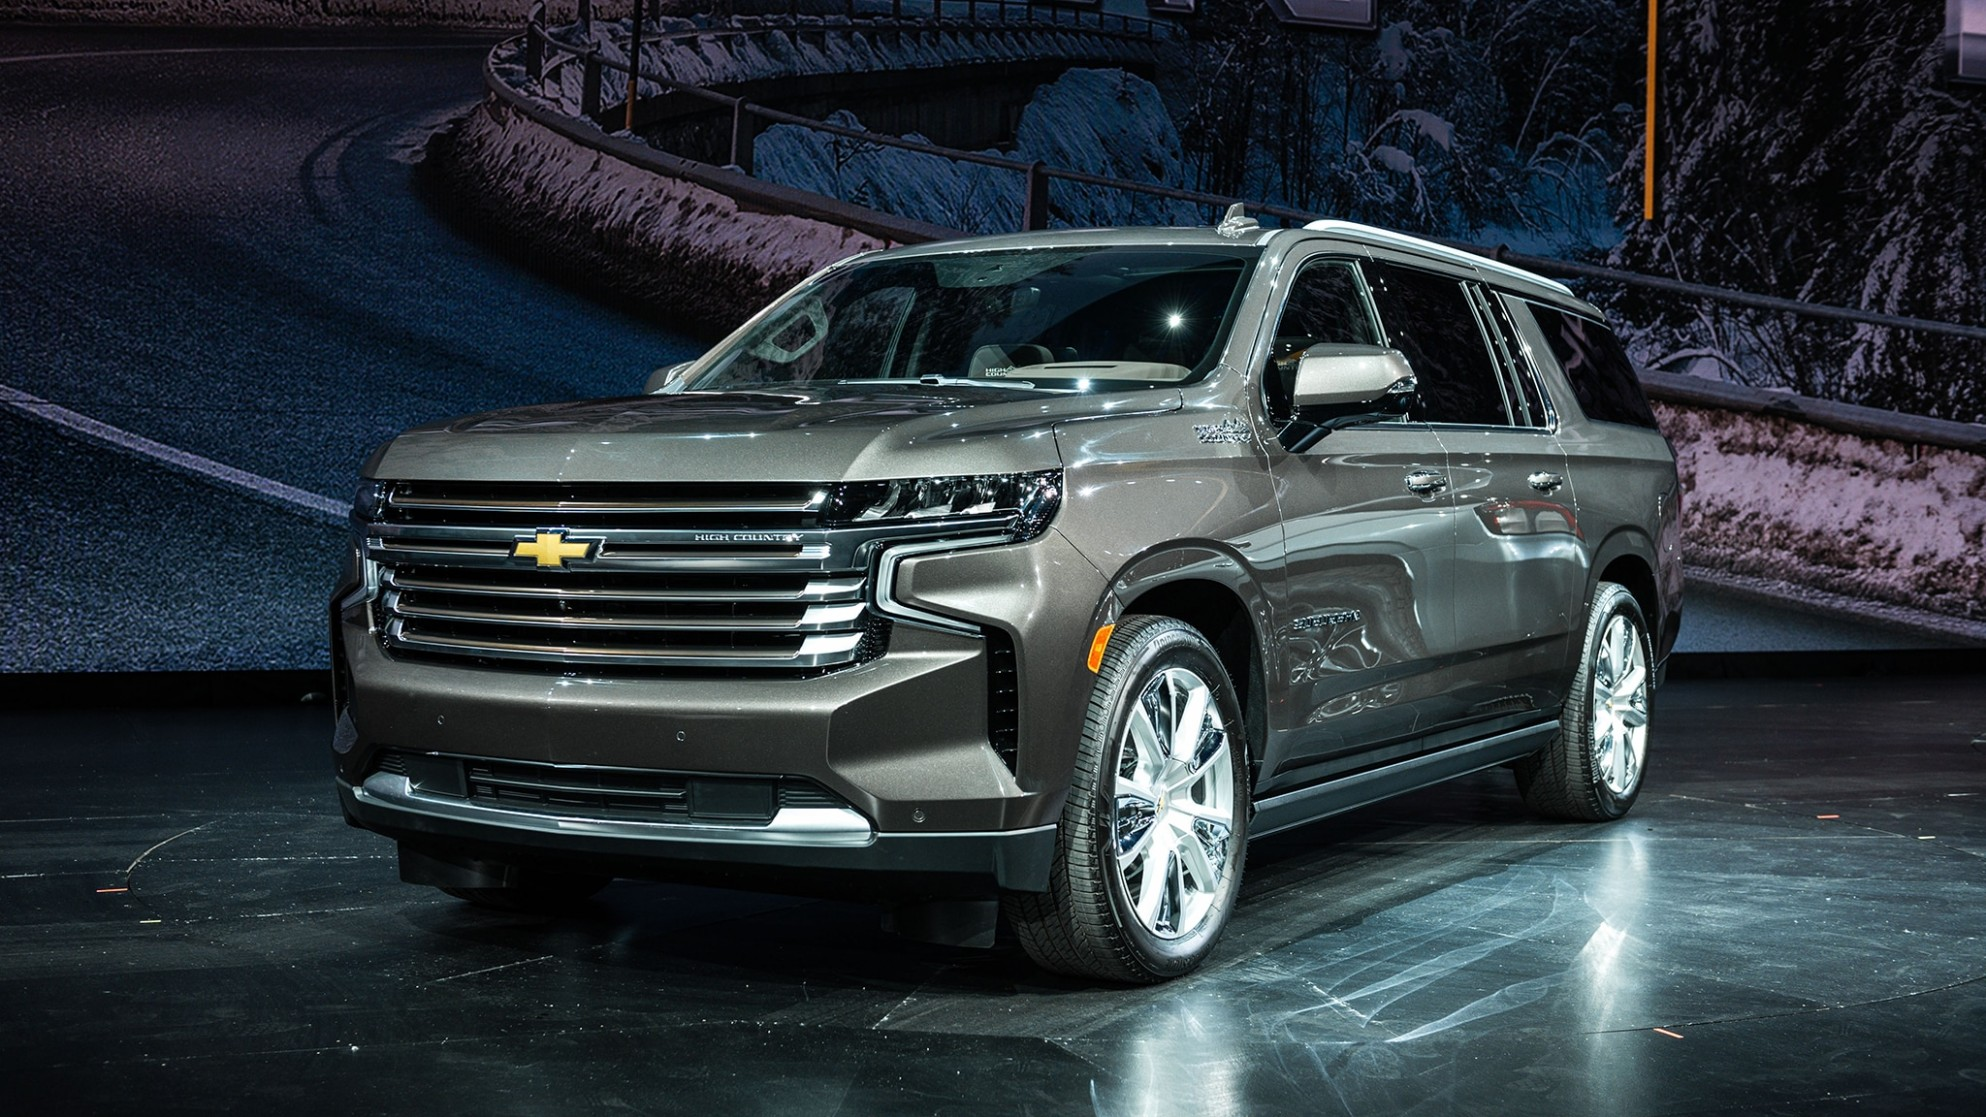 3 Chevrolet Suburban First Look: Biggest and Baddest Full-Size SUV? - When Will The 2021 Chevrolet Suburban Be Released